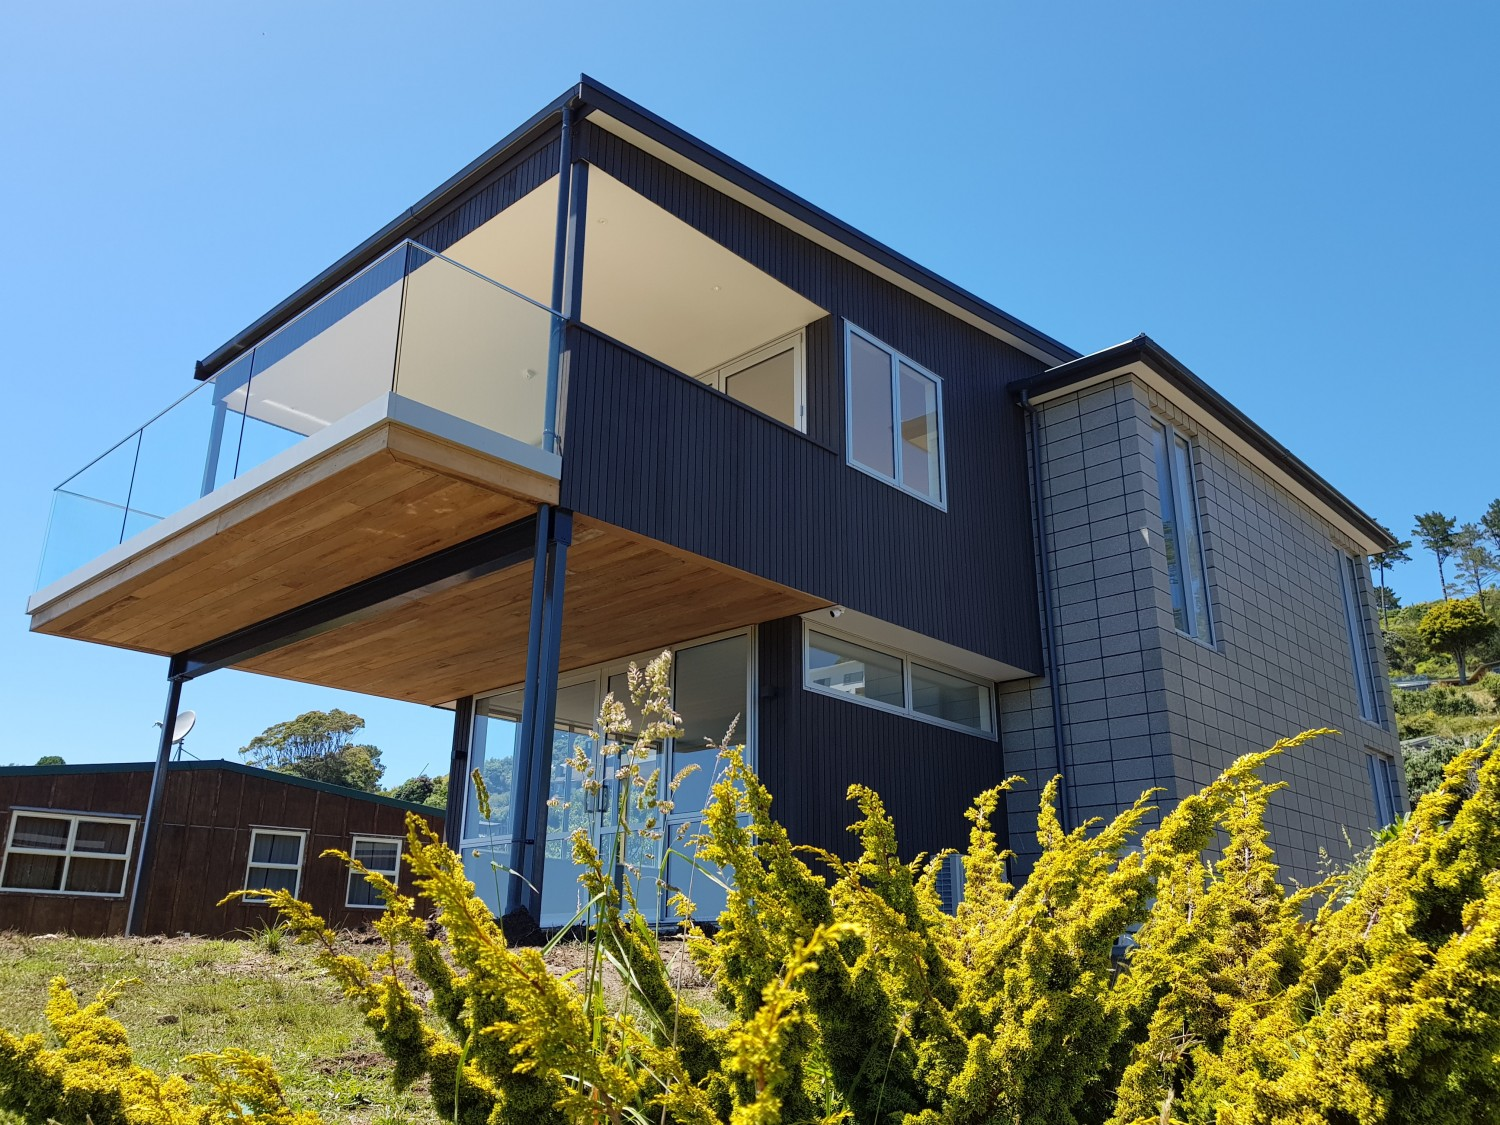 Black house with balcony deck